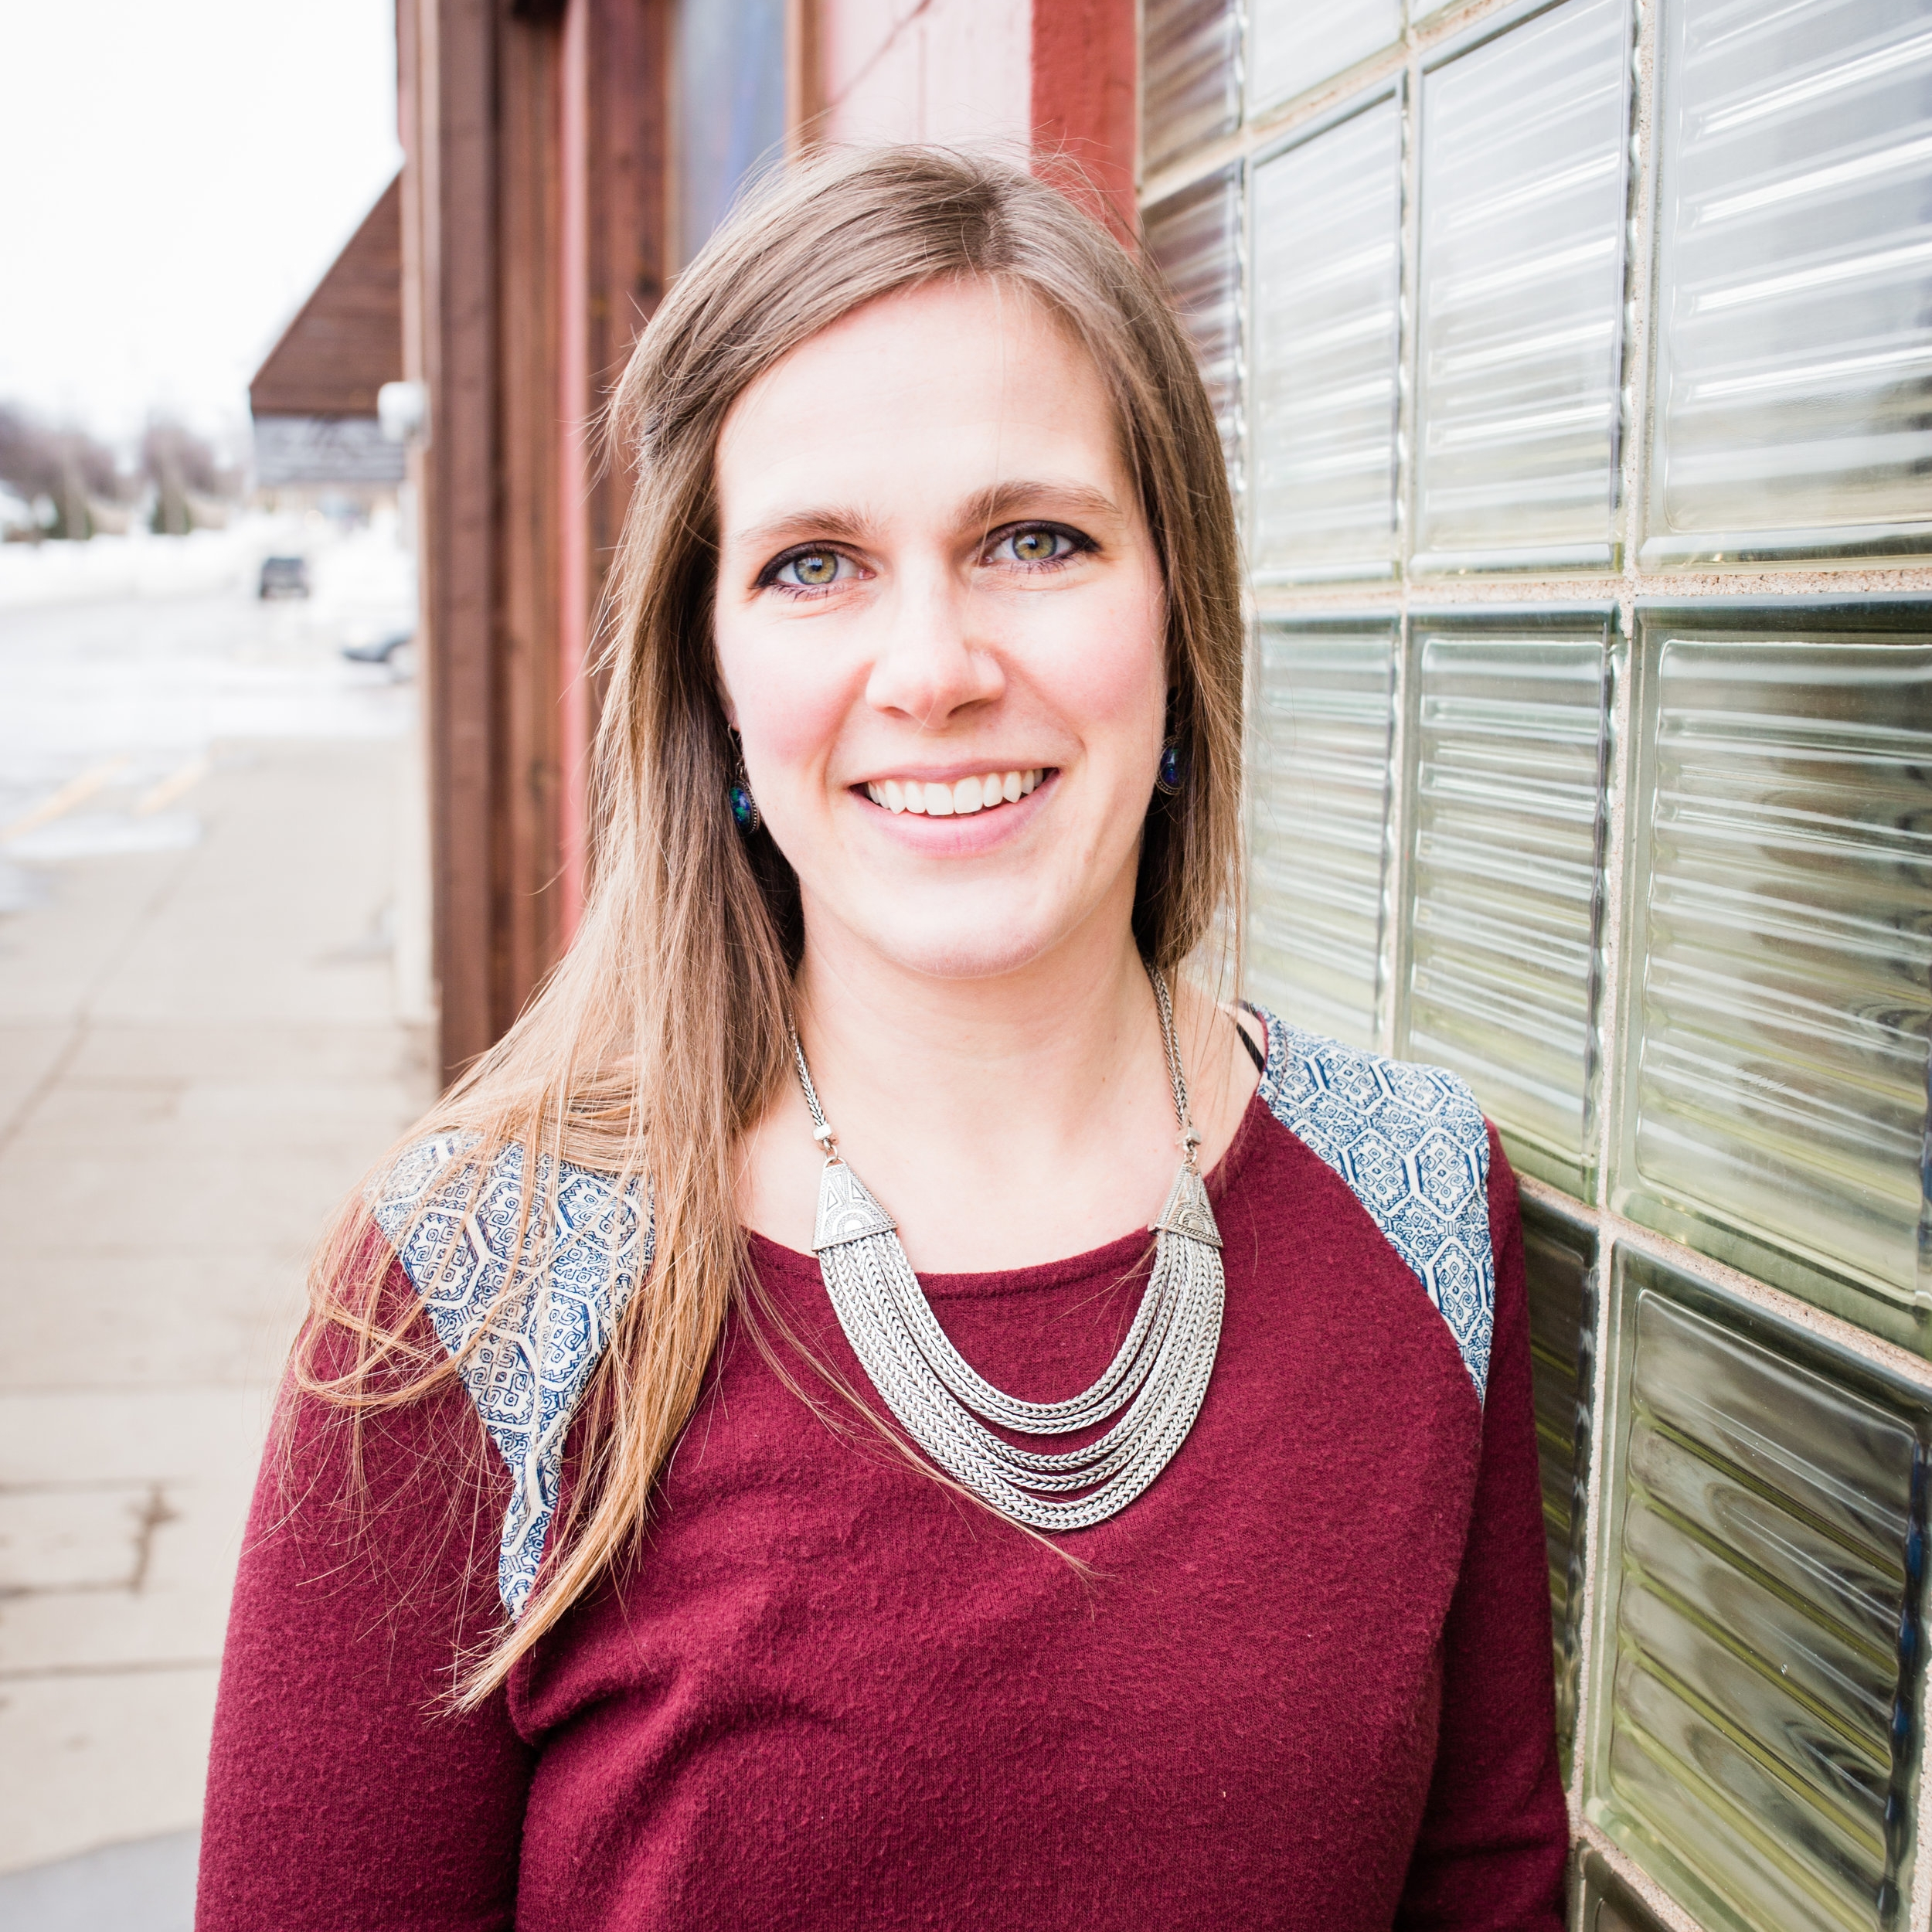 - My name is Emily Brister, I was born and raised on the Kenai Peninsula in South-central Alaska. I married my husband, Philip, in 2009 and we moved to Watford City, ND in 2012. We enjoy living here and love our booming community!